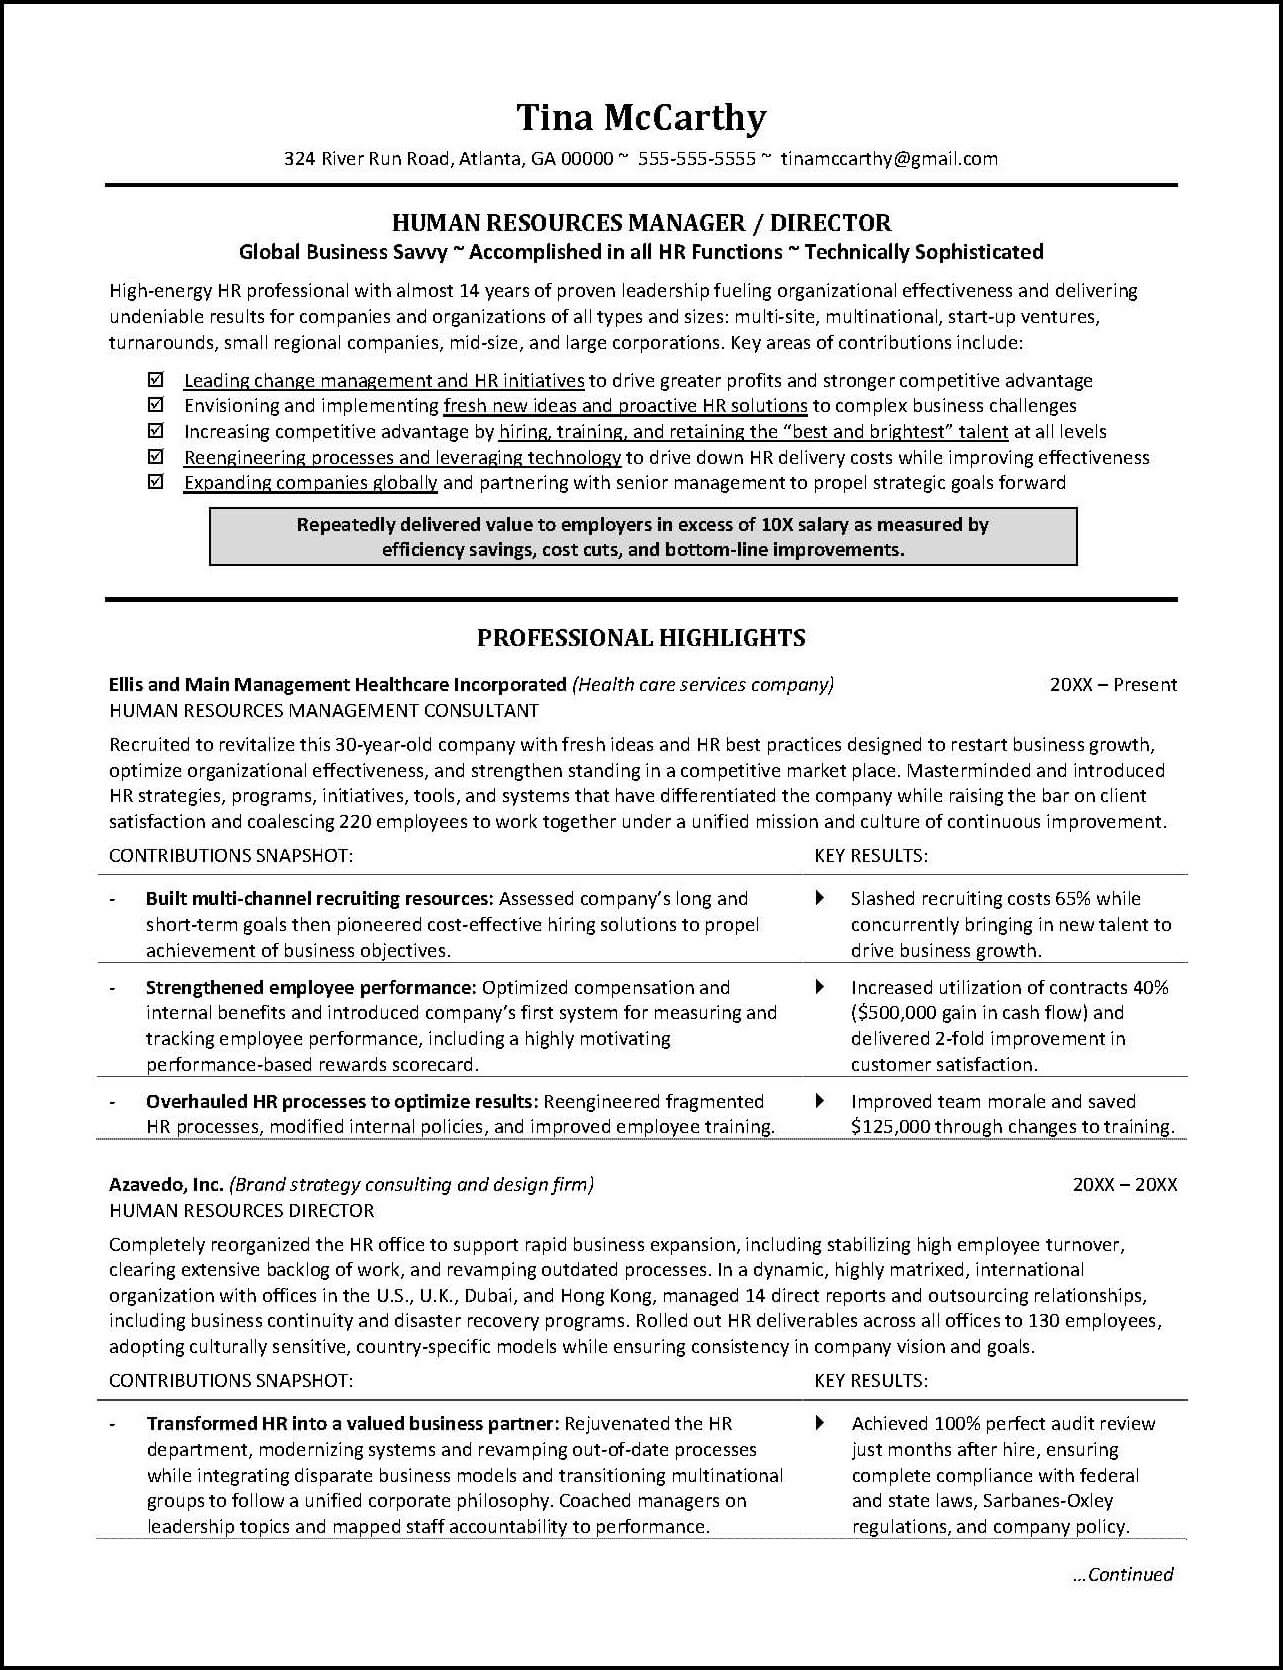 human resources resume example distinctive career services template food experience Resume Human Resources Resume Template